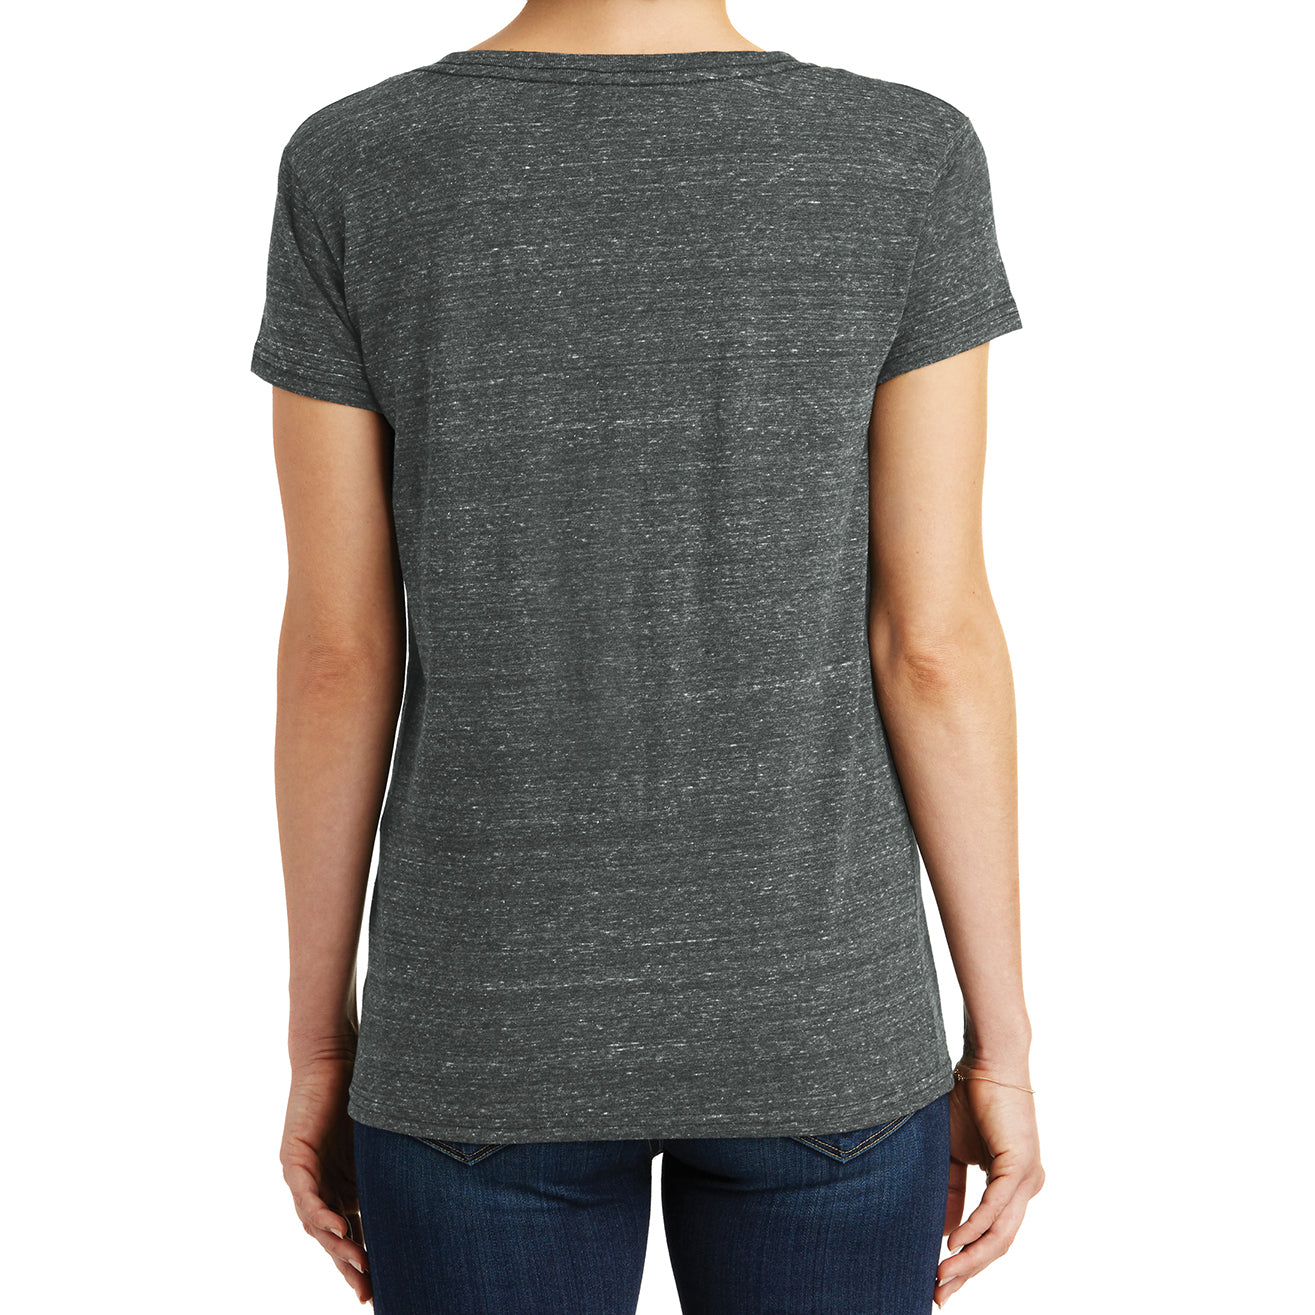 Womens Cosmic Relaxed V-Neck Tee - Black/Grey Cosmic - Back